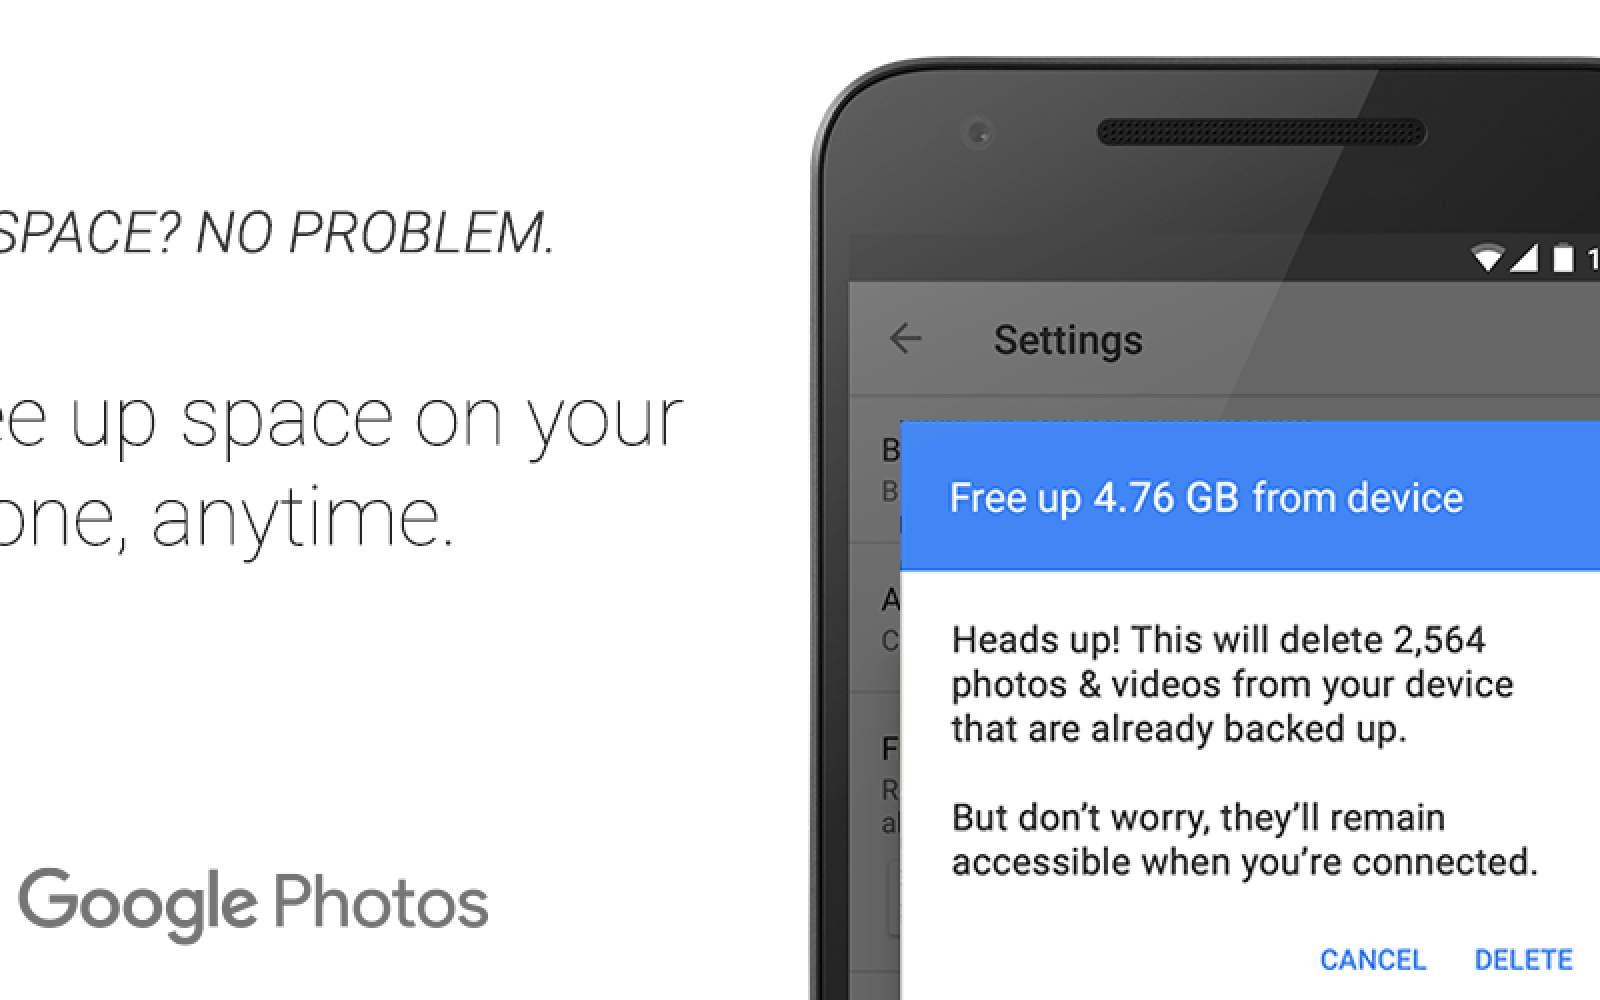 16GB iPhone users rejoice: New Google Photos feature lets you easily free up storage on iOS